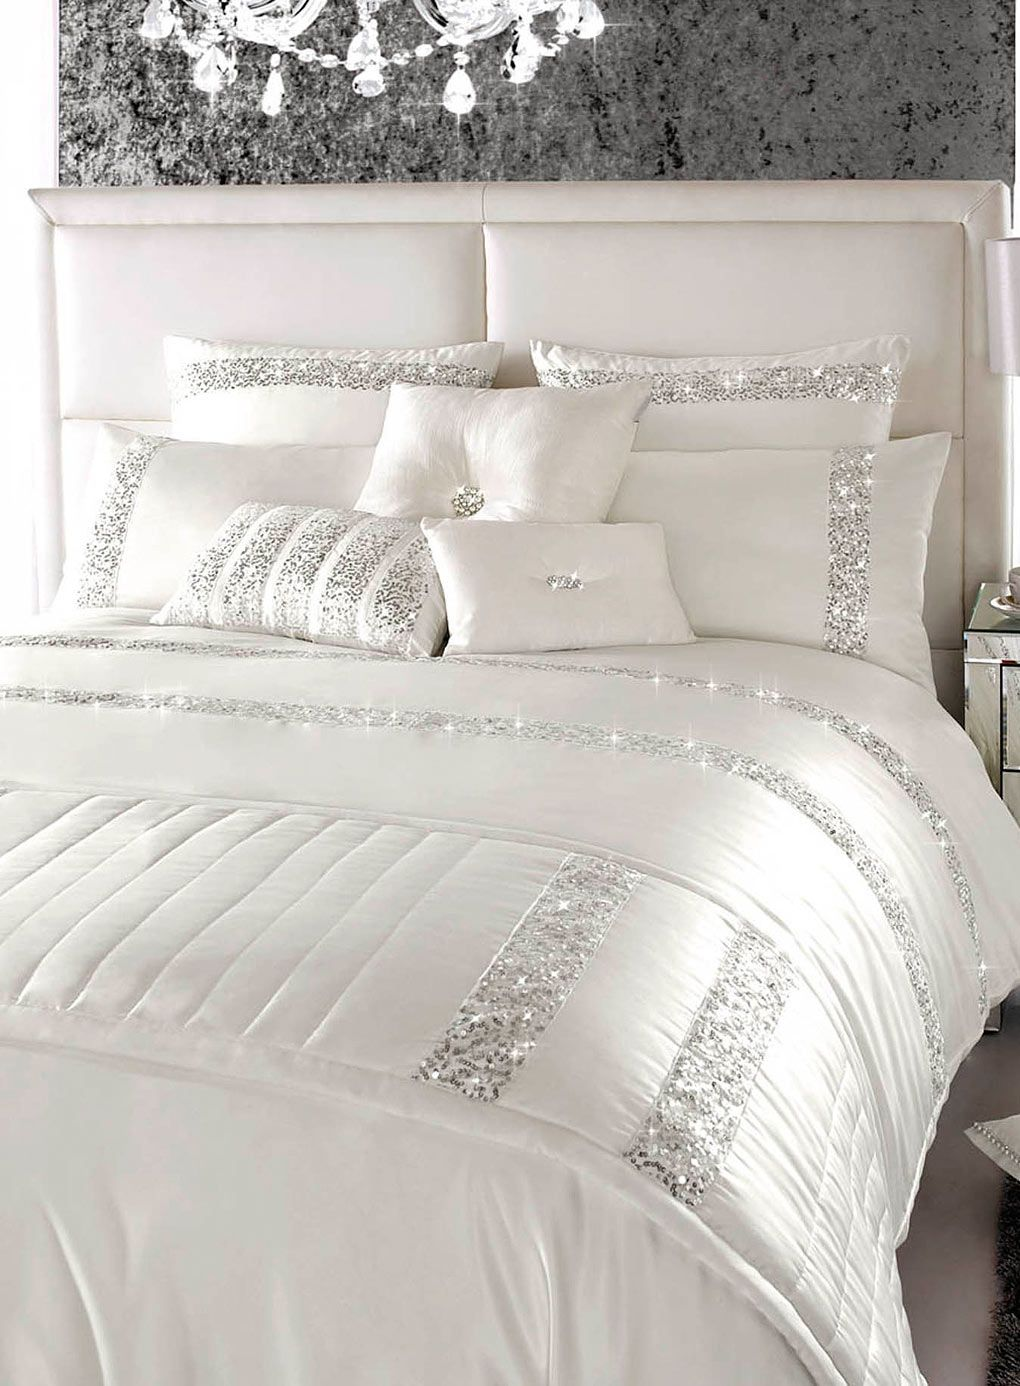 Kylie Minogue Safia Oyster Sequin Bedding Bedding Sets Bedding Sets Bedding Sets Sheets